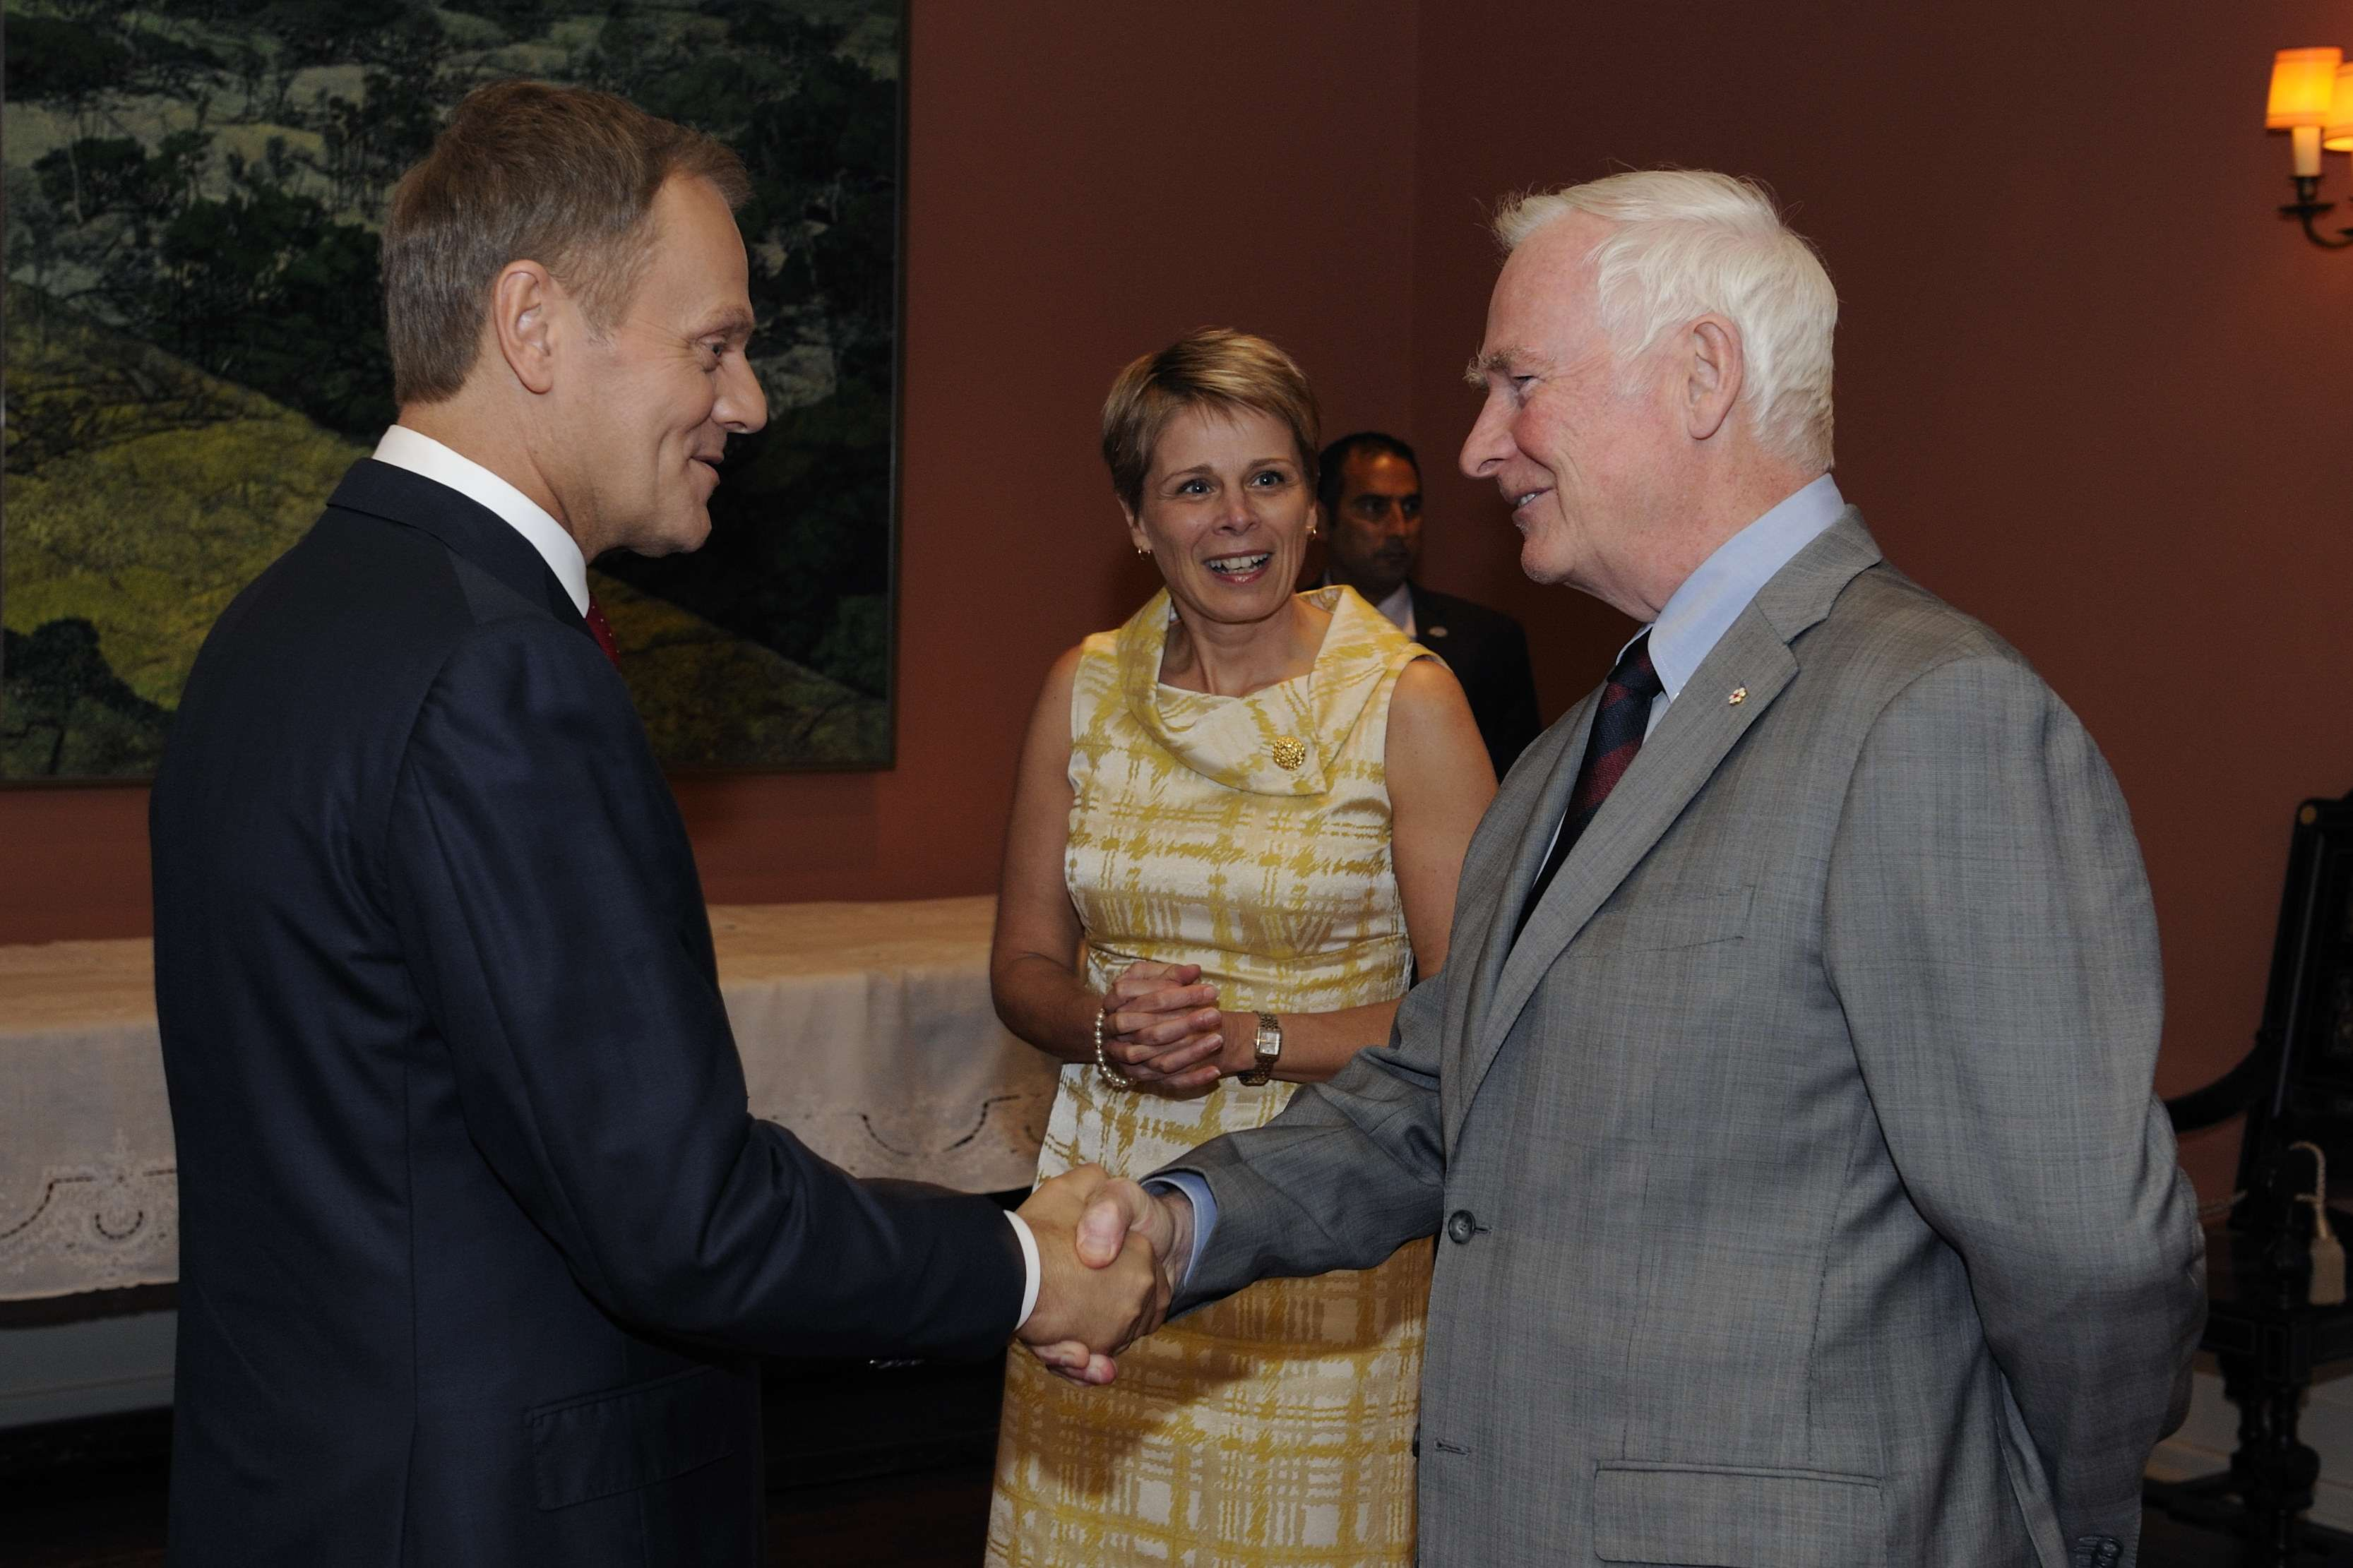 His Excellency the Right Honourable David Johnston, Governor General of Canada, met with His Excellency Donald Tusk, Prime Minister of the Republic of Poland, at Rideau Hall, on May 14, 2012.